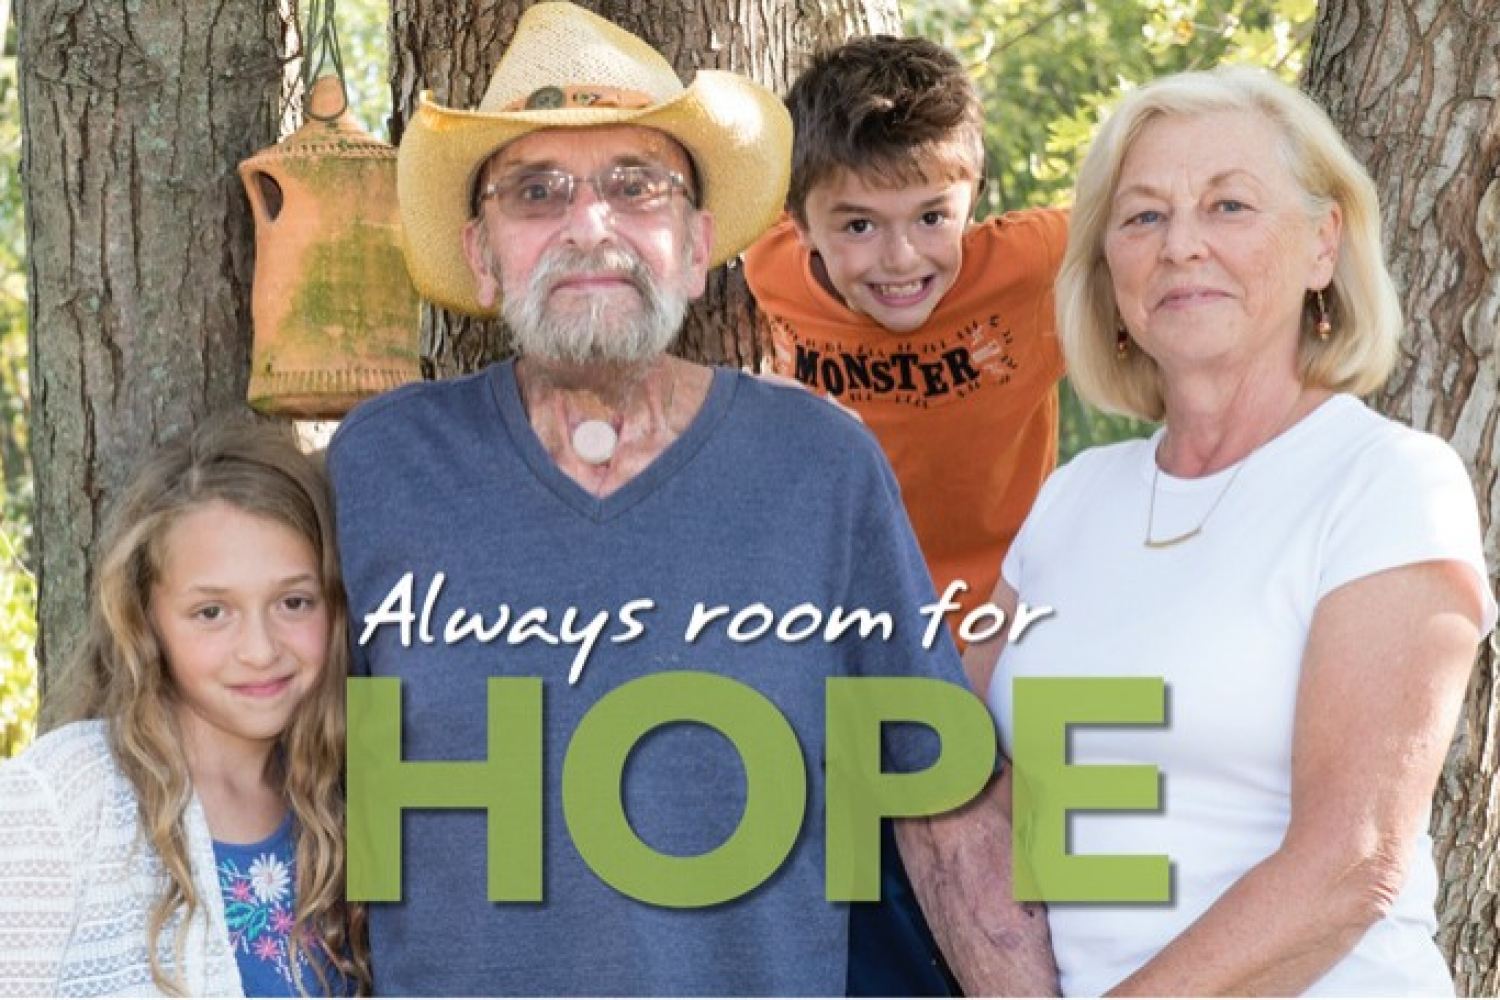 Always room for hope graphic